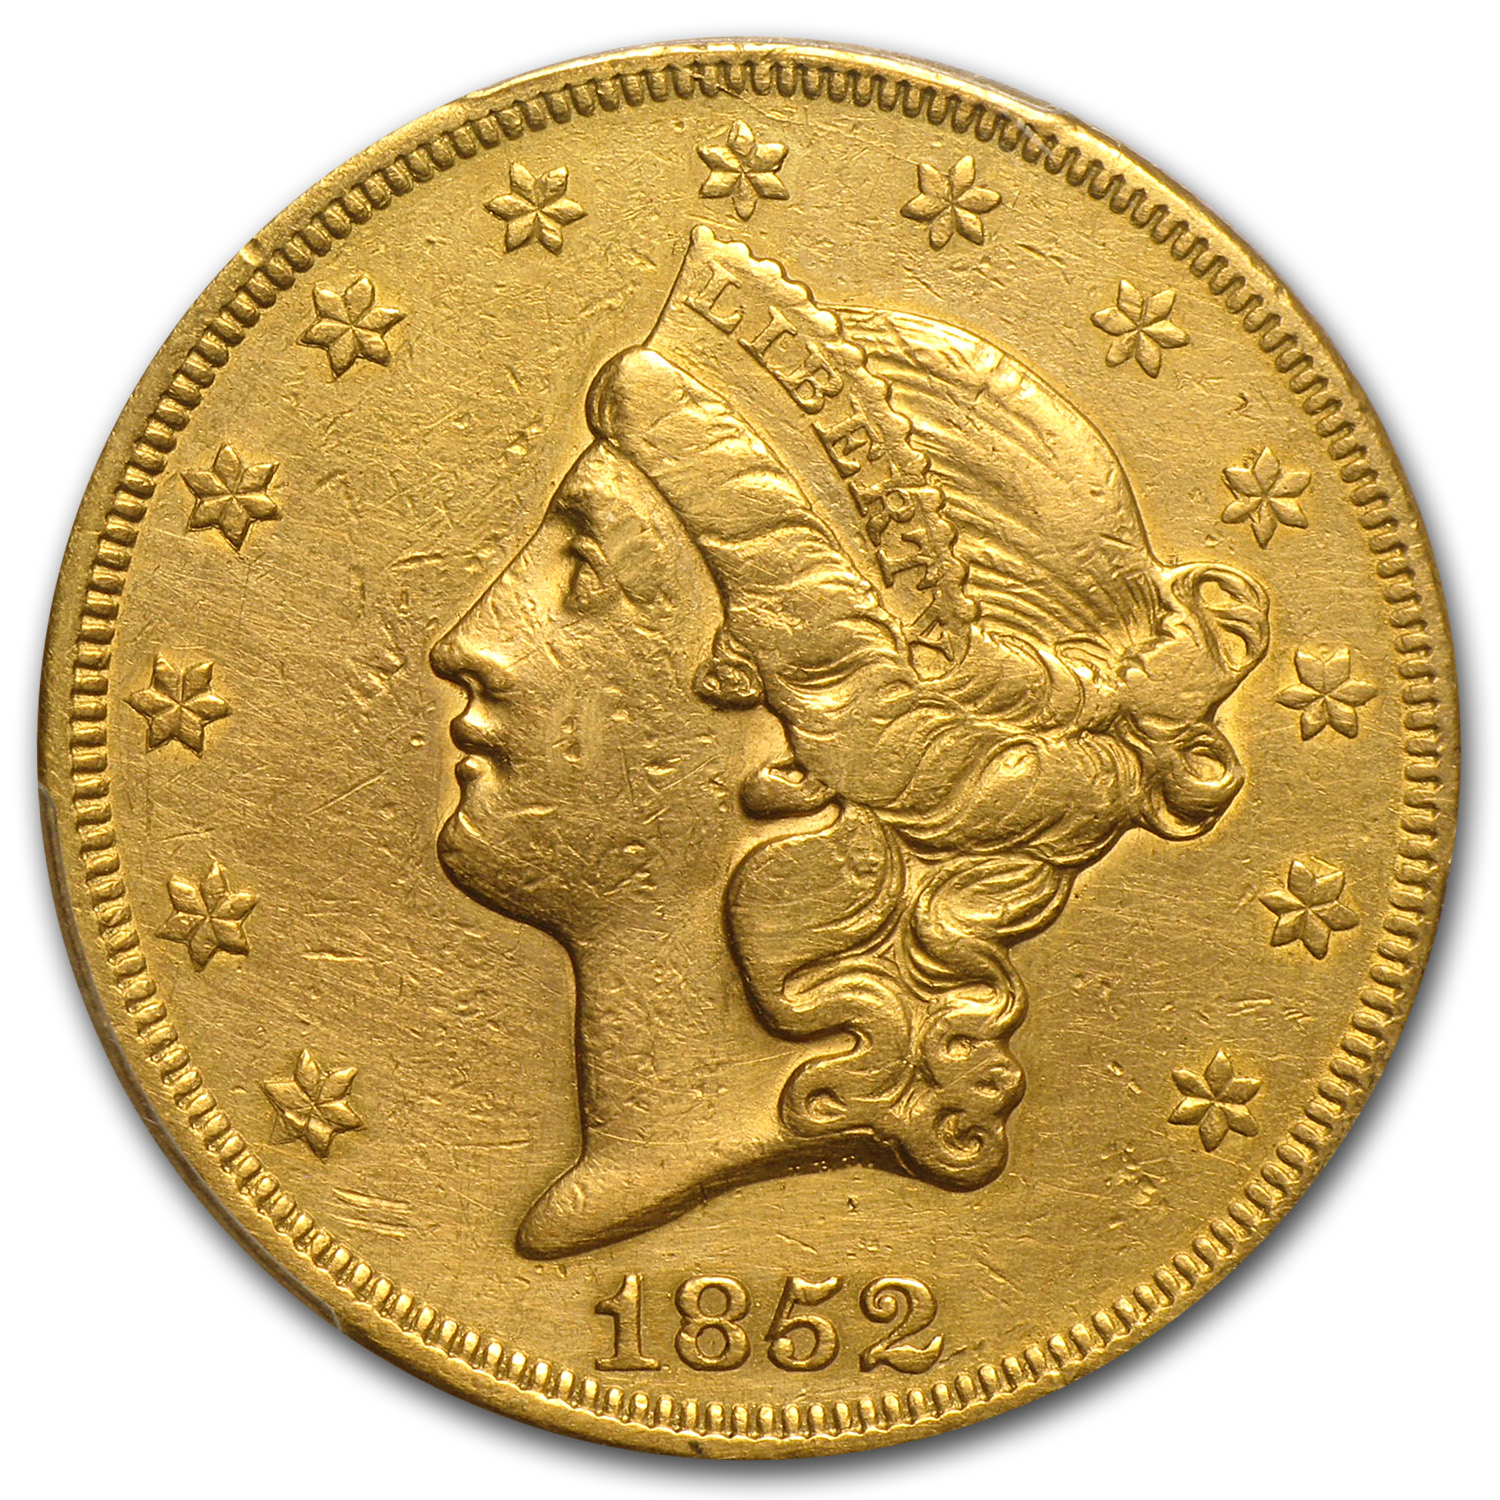 1852 $20 Gold Liberty Double Eagle - (EF Details) - PCGS